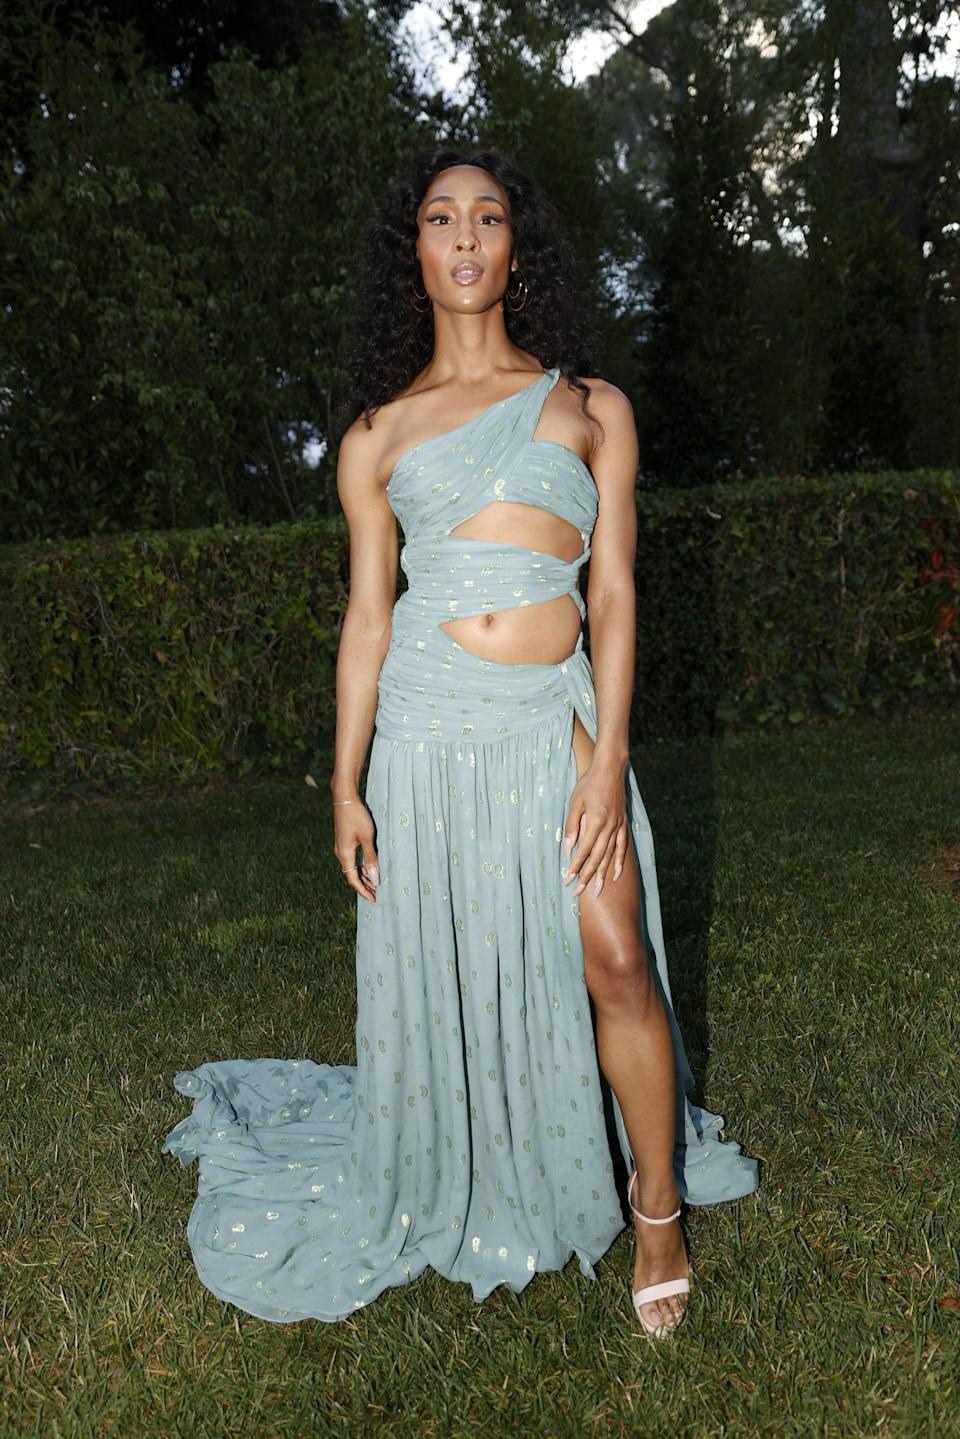 """<p>If you have a fancy occasion to attend, follow in Mj Rodriguez's footsteps with this <a href=""""https://www.popsugar.com/fashion/mj-rodriguez-cannes-amfar-gala-outfit-48423288"""" class=""""link rapid-noclick-resp"""" rel=""""nofollow noopener"""" target=""""_blank"""" data-ylk=""""slk:seafoam-green Etro gown"""">seafoam-green Etro gown</a> at the Cannes Film Festival.</p>"""